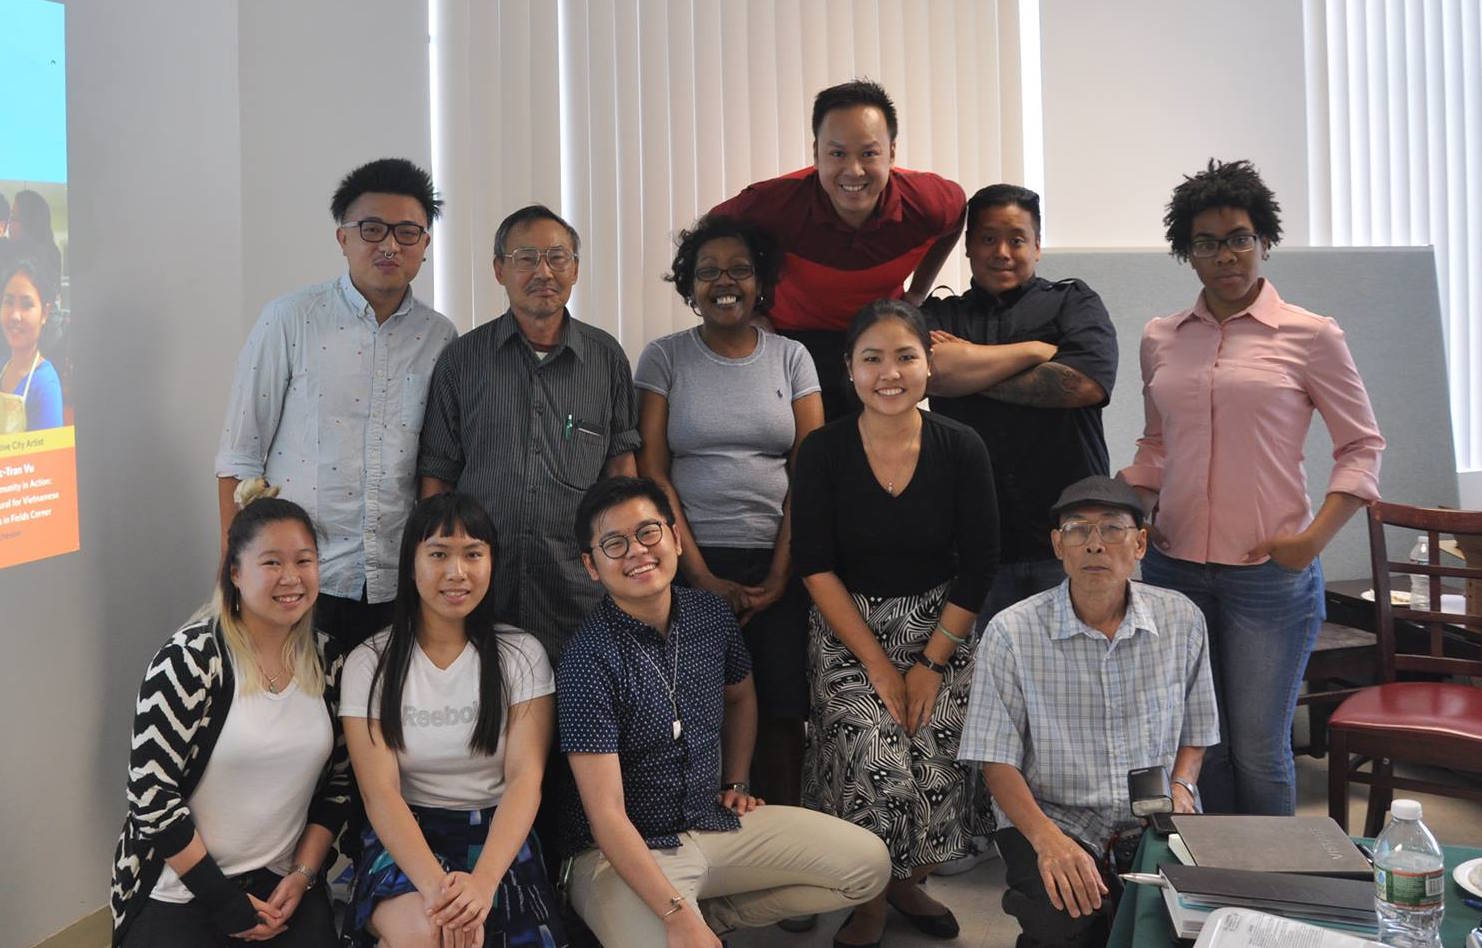 Top row: Tam Le; Middle row, left to right: Justin Nguyen, Hung Vu, Michelle Nguyen, Tommy Nguyen, and Grace Ejiwale; Awkward bottom row, left to right: Kathy Le, Joan DoTruong, Duoc Nguyen, Tran Vu, and Cuong Nguyen.  (Photo Credit: Kevin Lam); Missing: Tony Vu in the photo